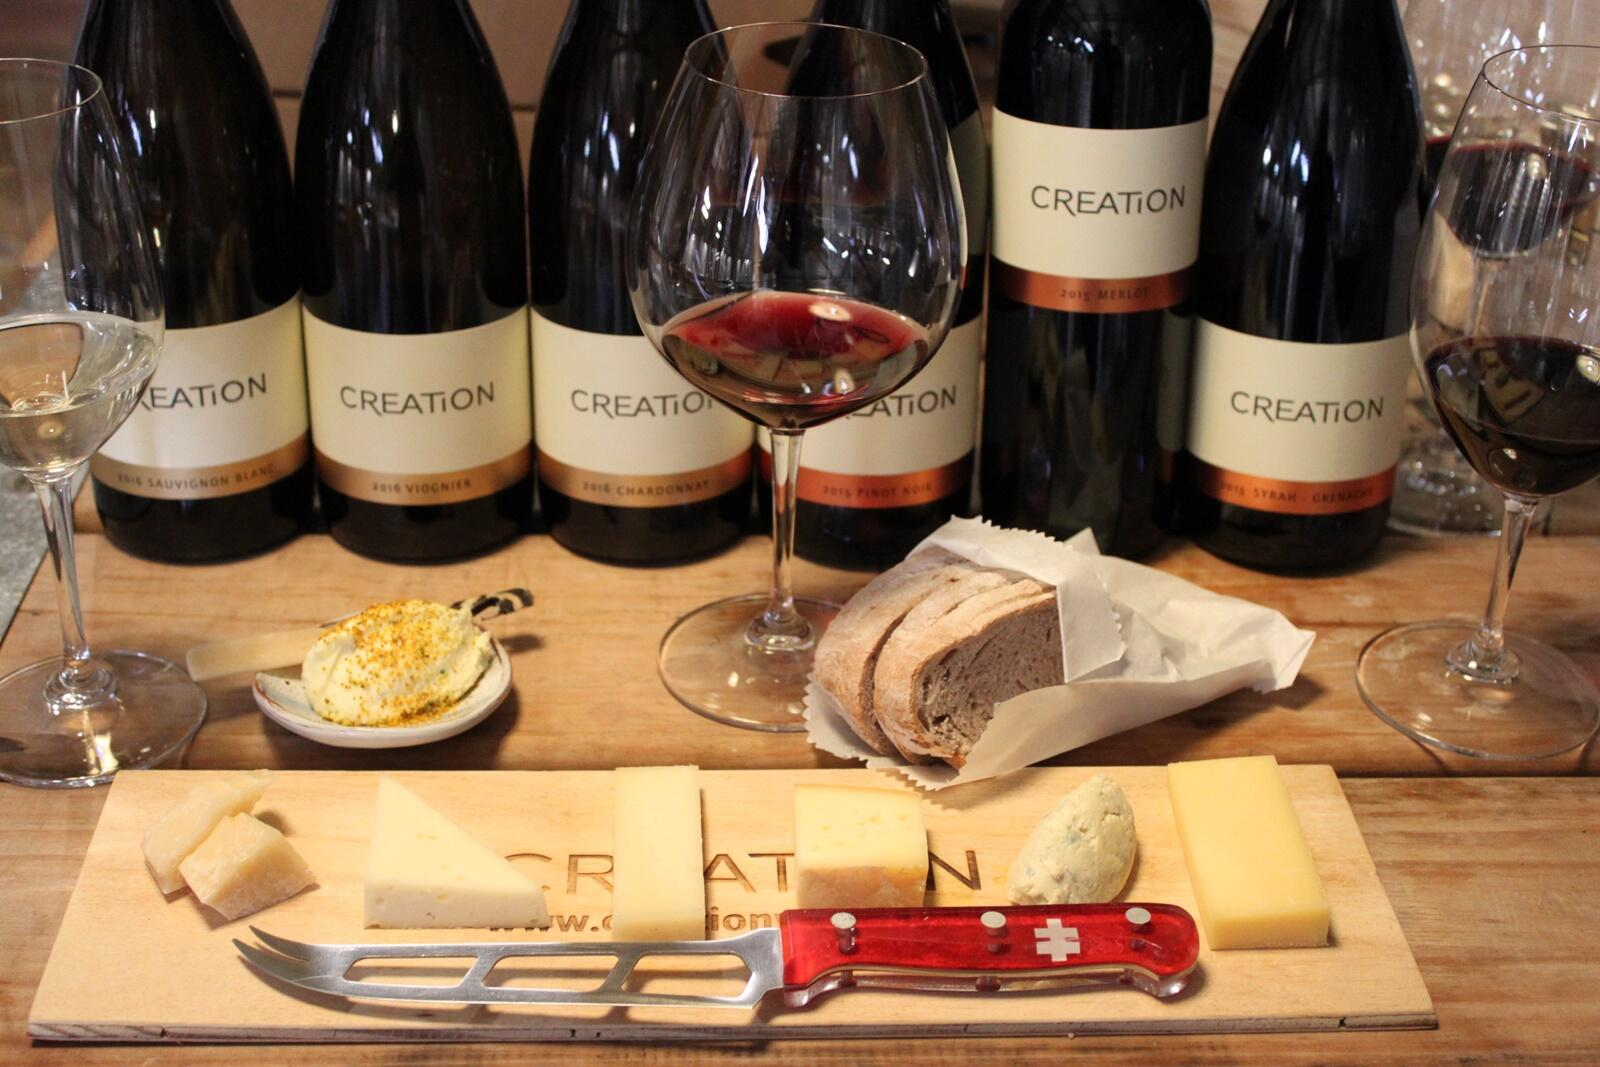 A selection of cheeses and wines